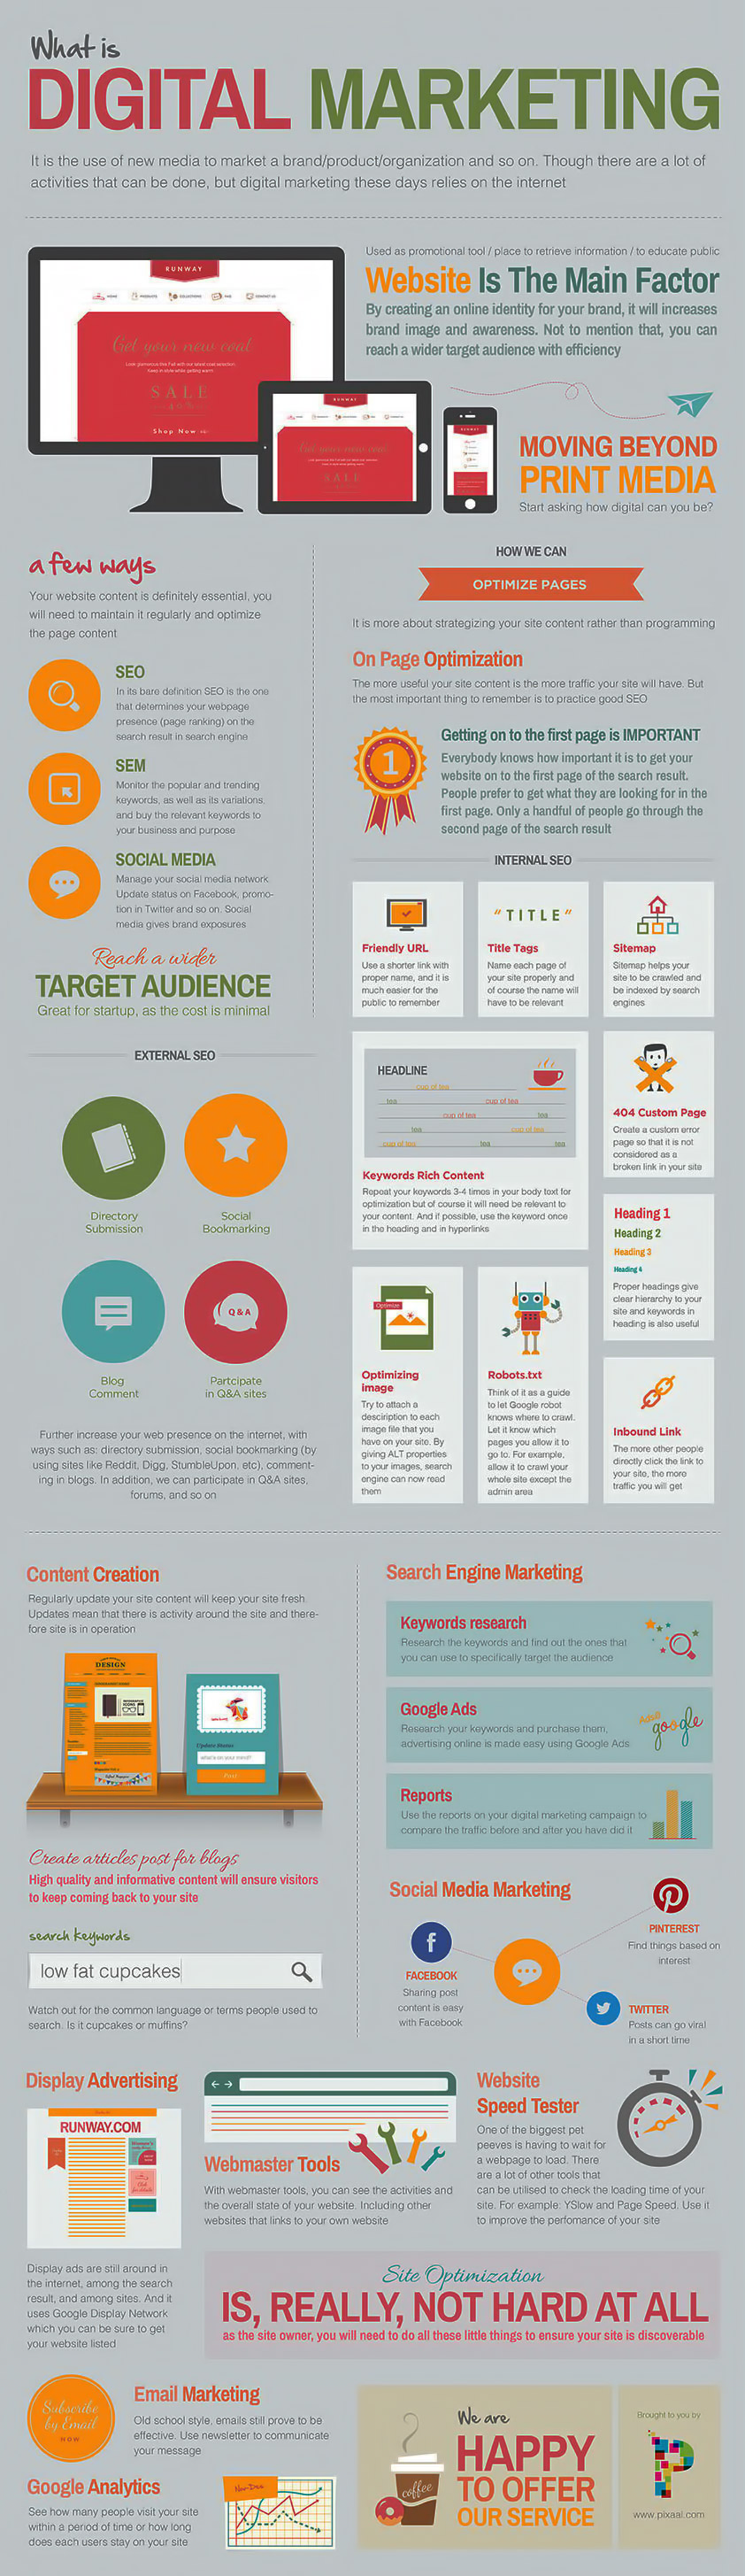 Digital Marketing infographic.